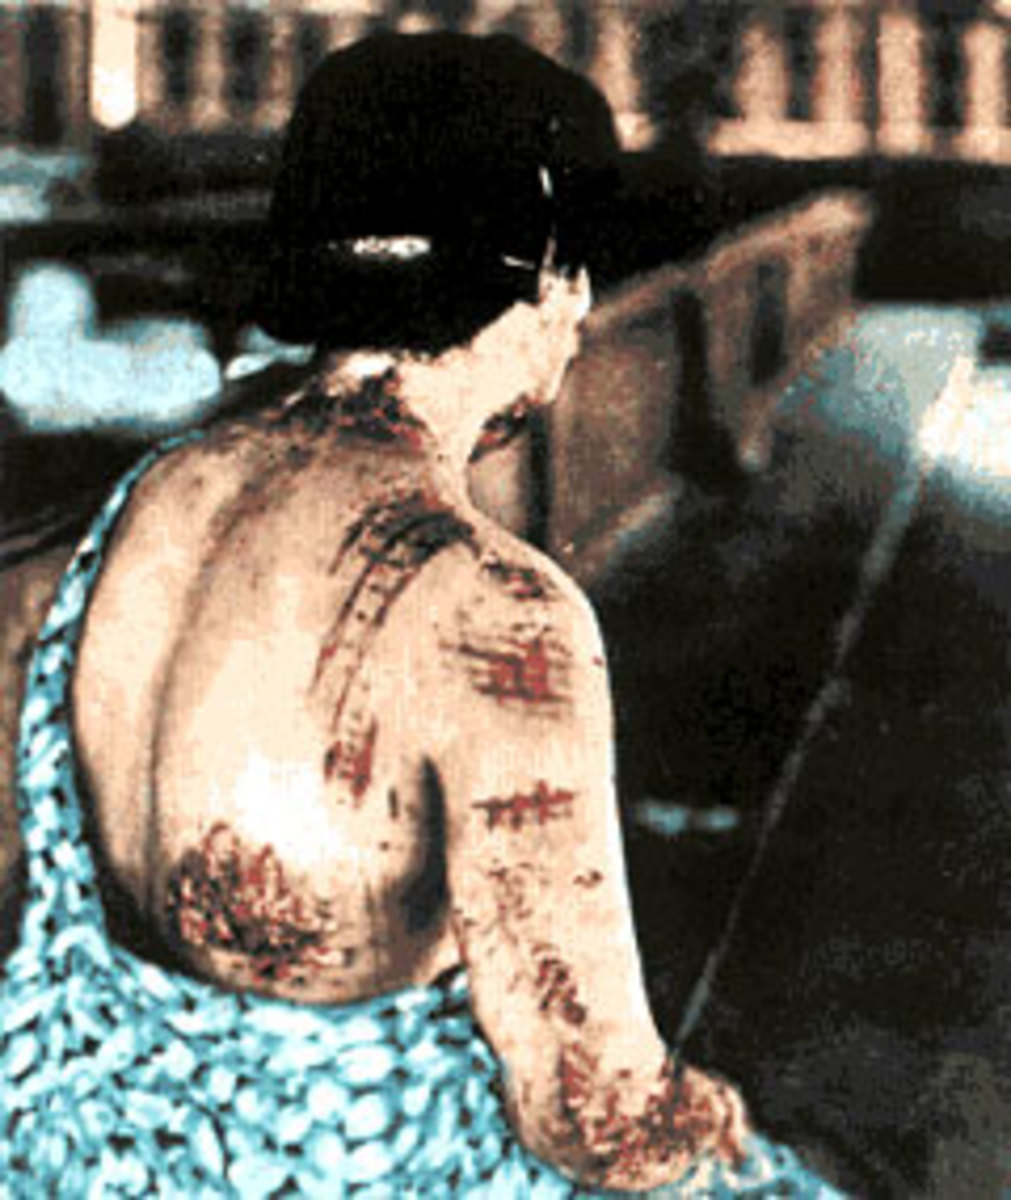 The energy released by the bomb was powerful enough to burn through clothing. The dark portions of the garments this victim wore at the time of the blast were emblazoned on to the flesh as scars, while skin underneath the lighter parts (which absorb